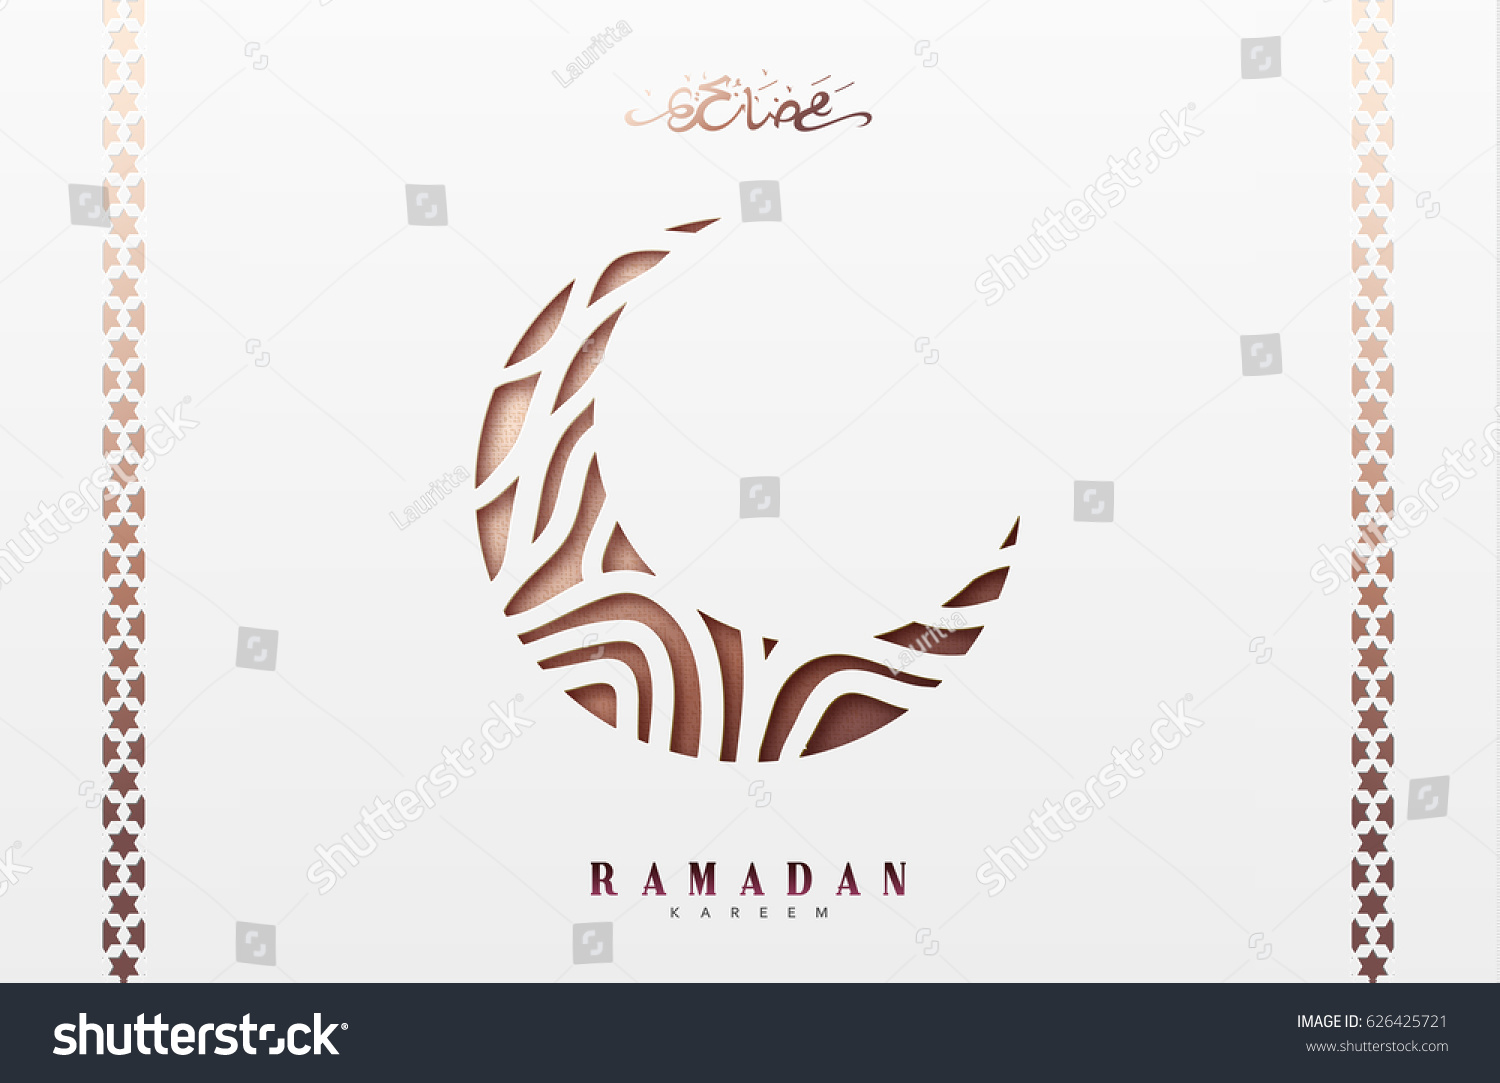 Month ramadan greeting card arabic calligraphy stock vector month ramadan greeting card with arabic calligraphy ramadan kareem islamic background half a month kristyandbryce Image collections